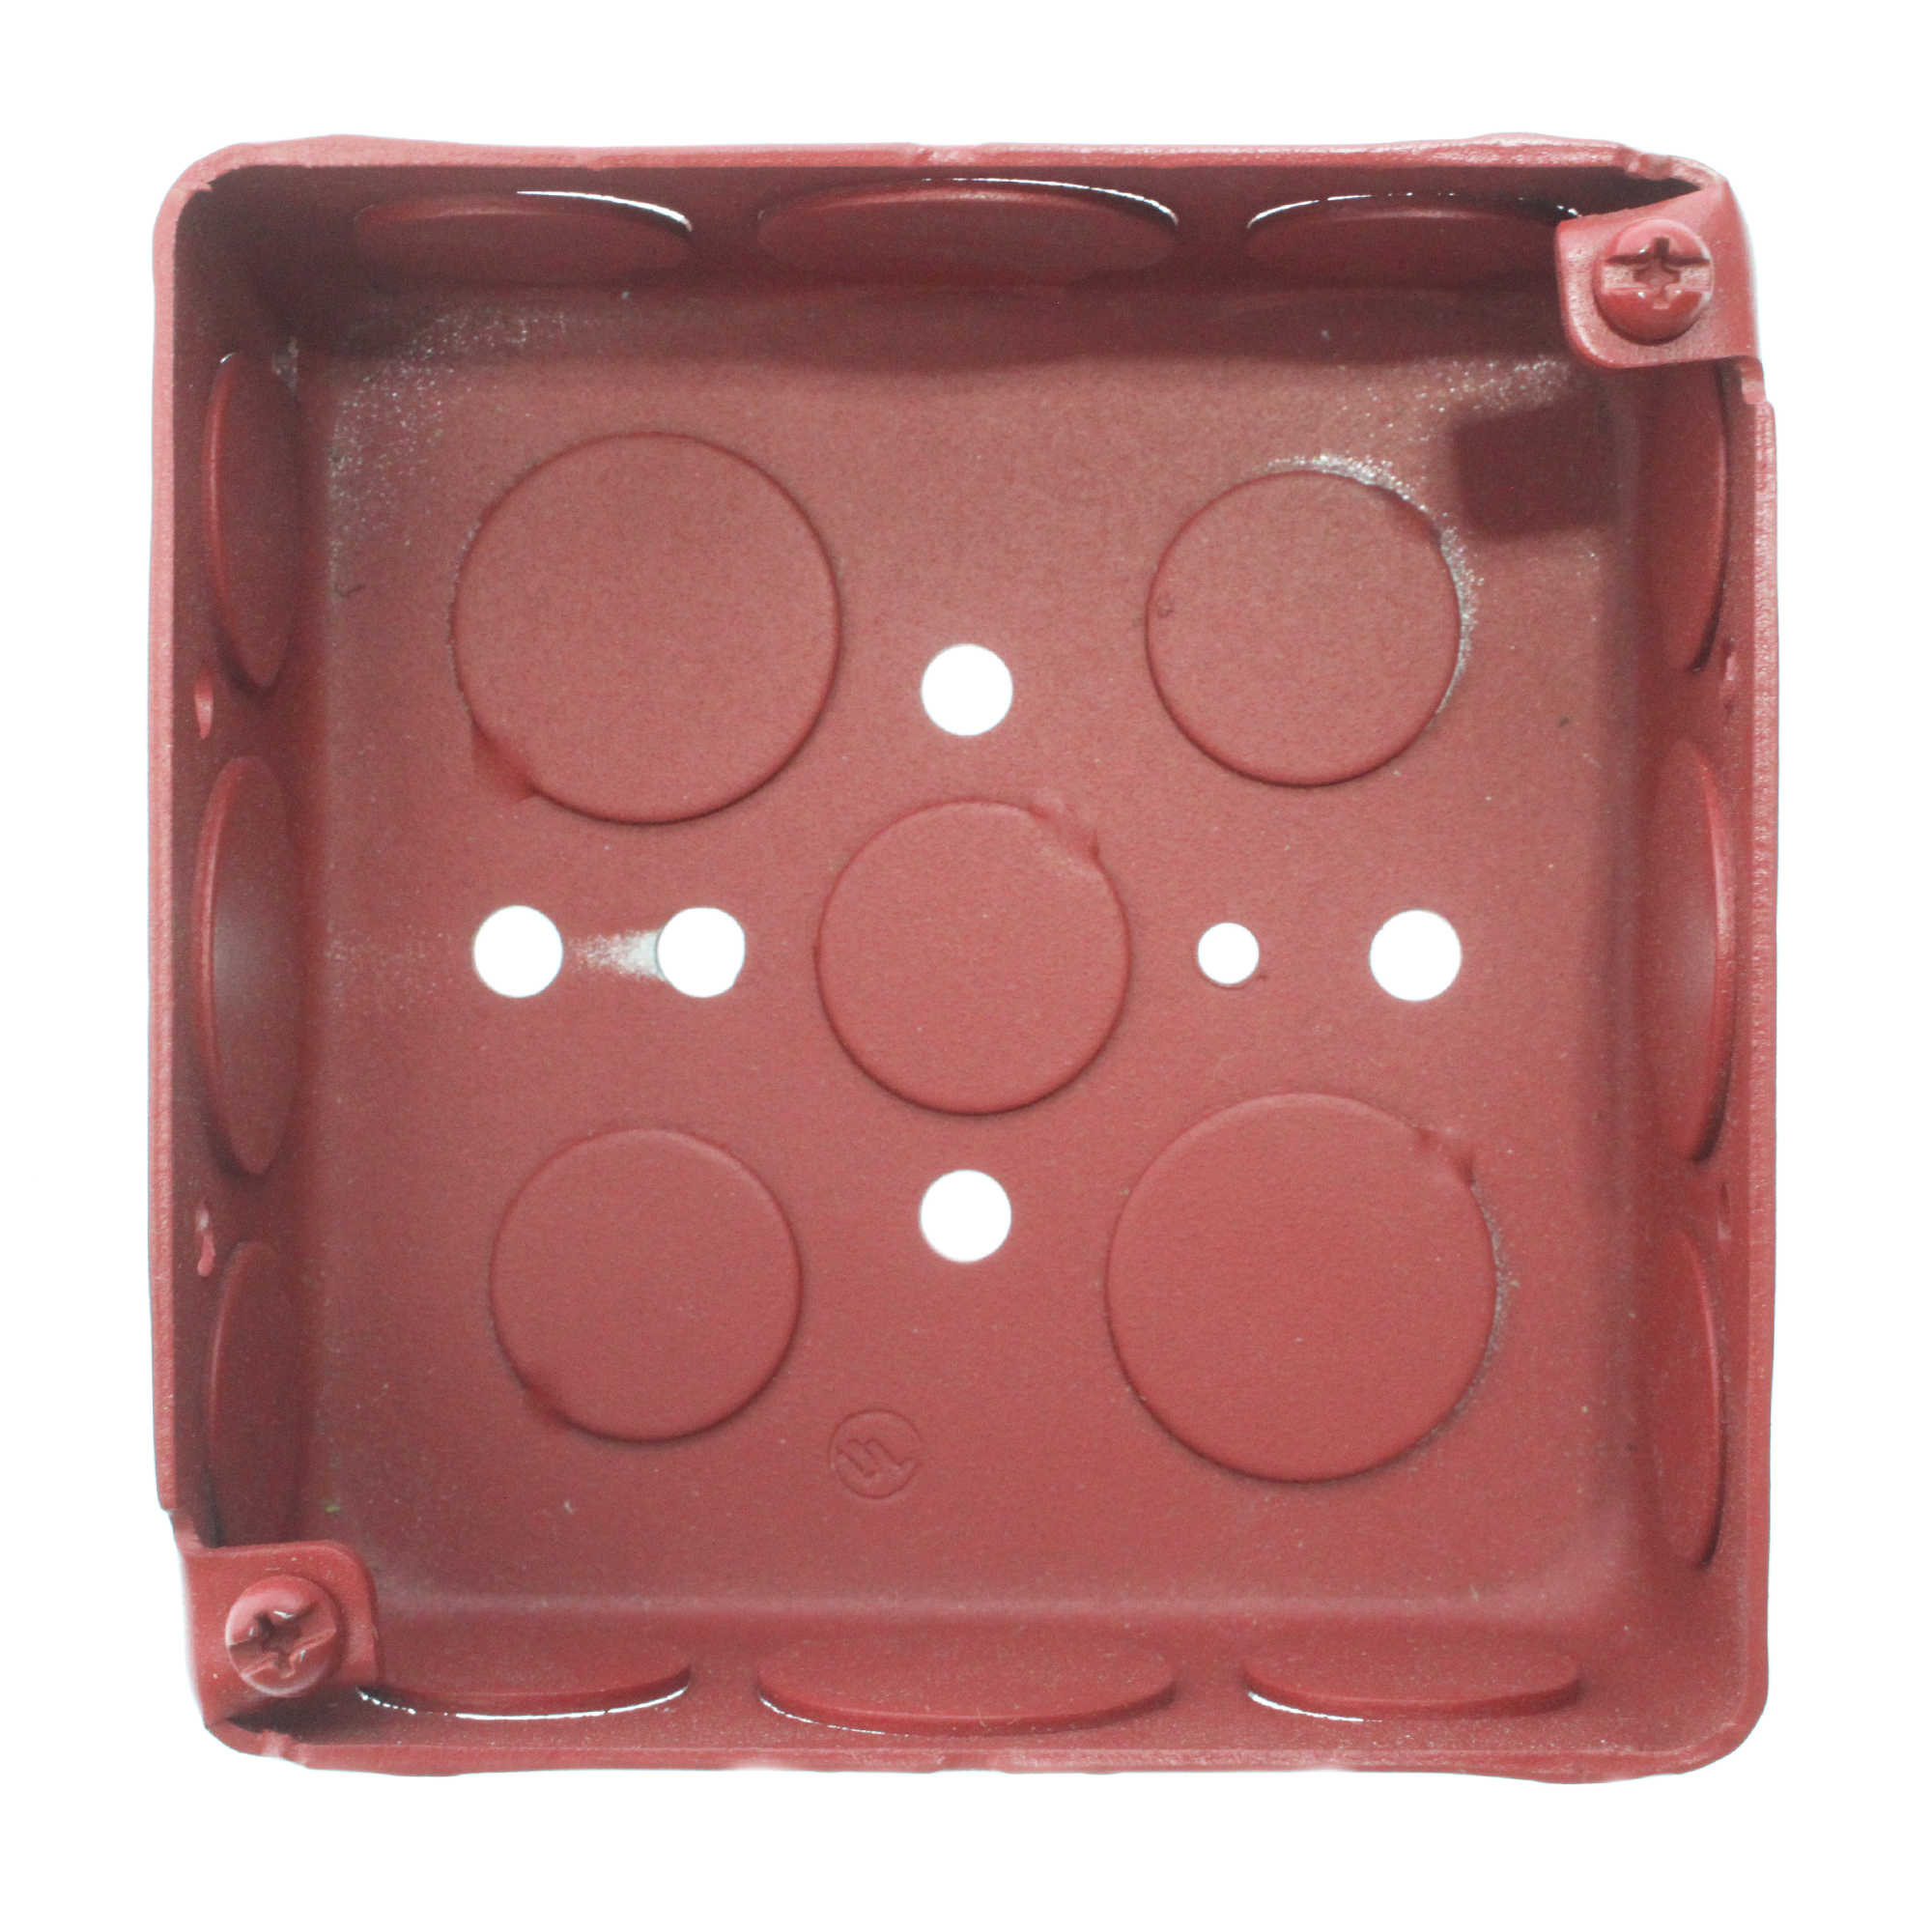 FCI Gamewell BBR 139-3101F Fire Alarm Surface Mount Device Back-Box, Steel, Red